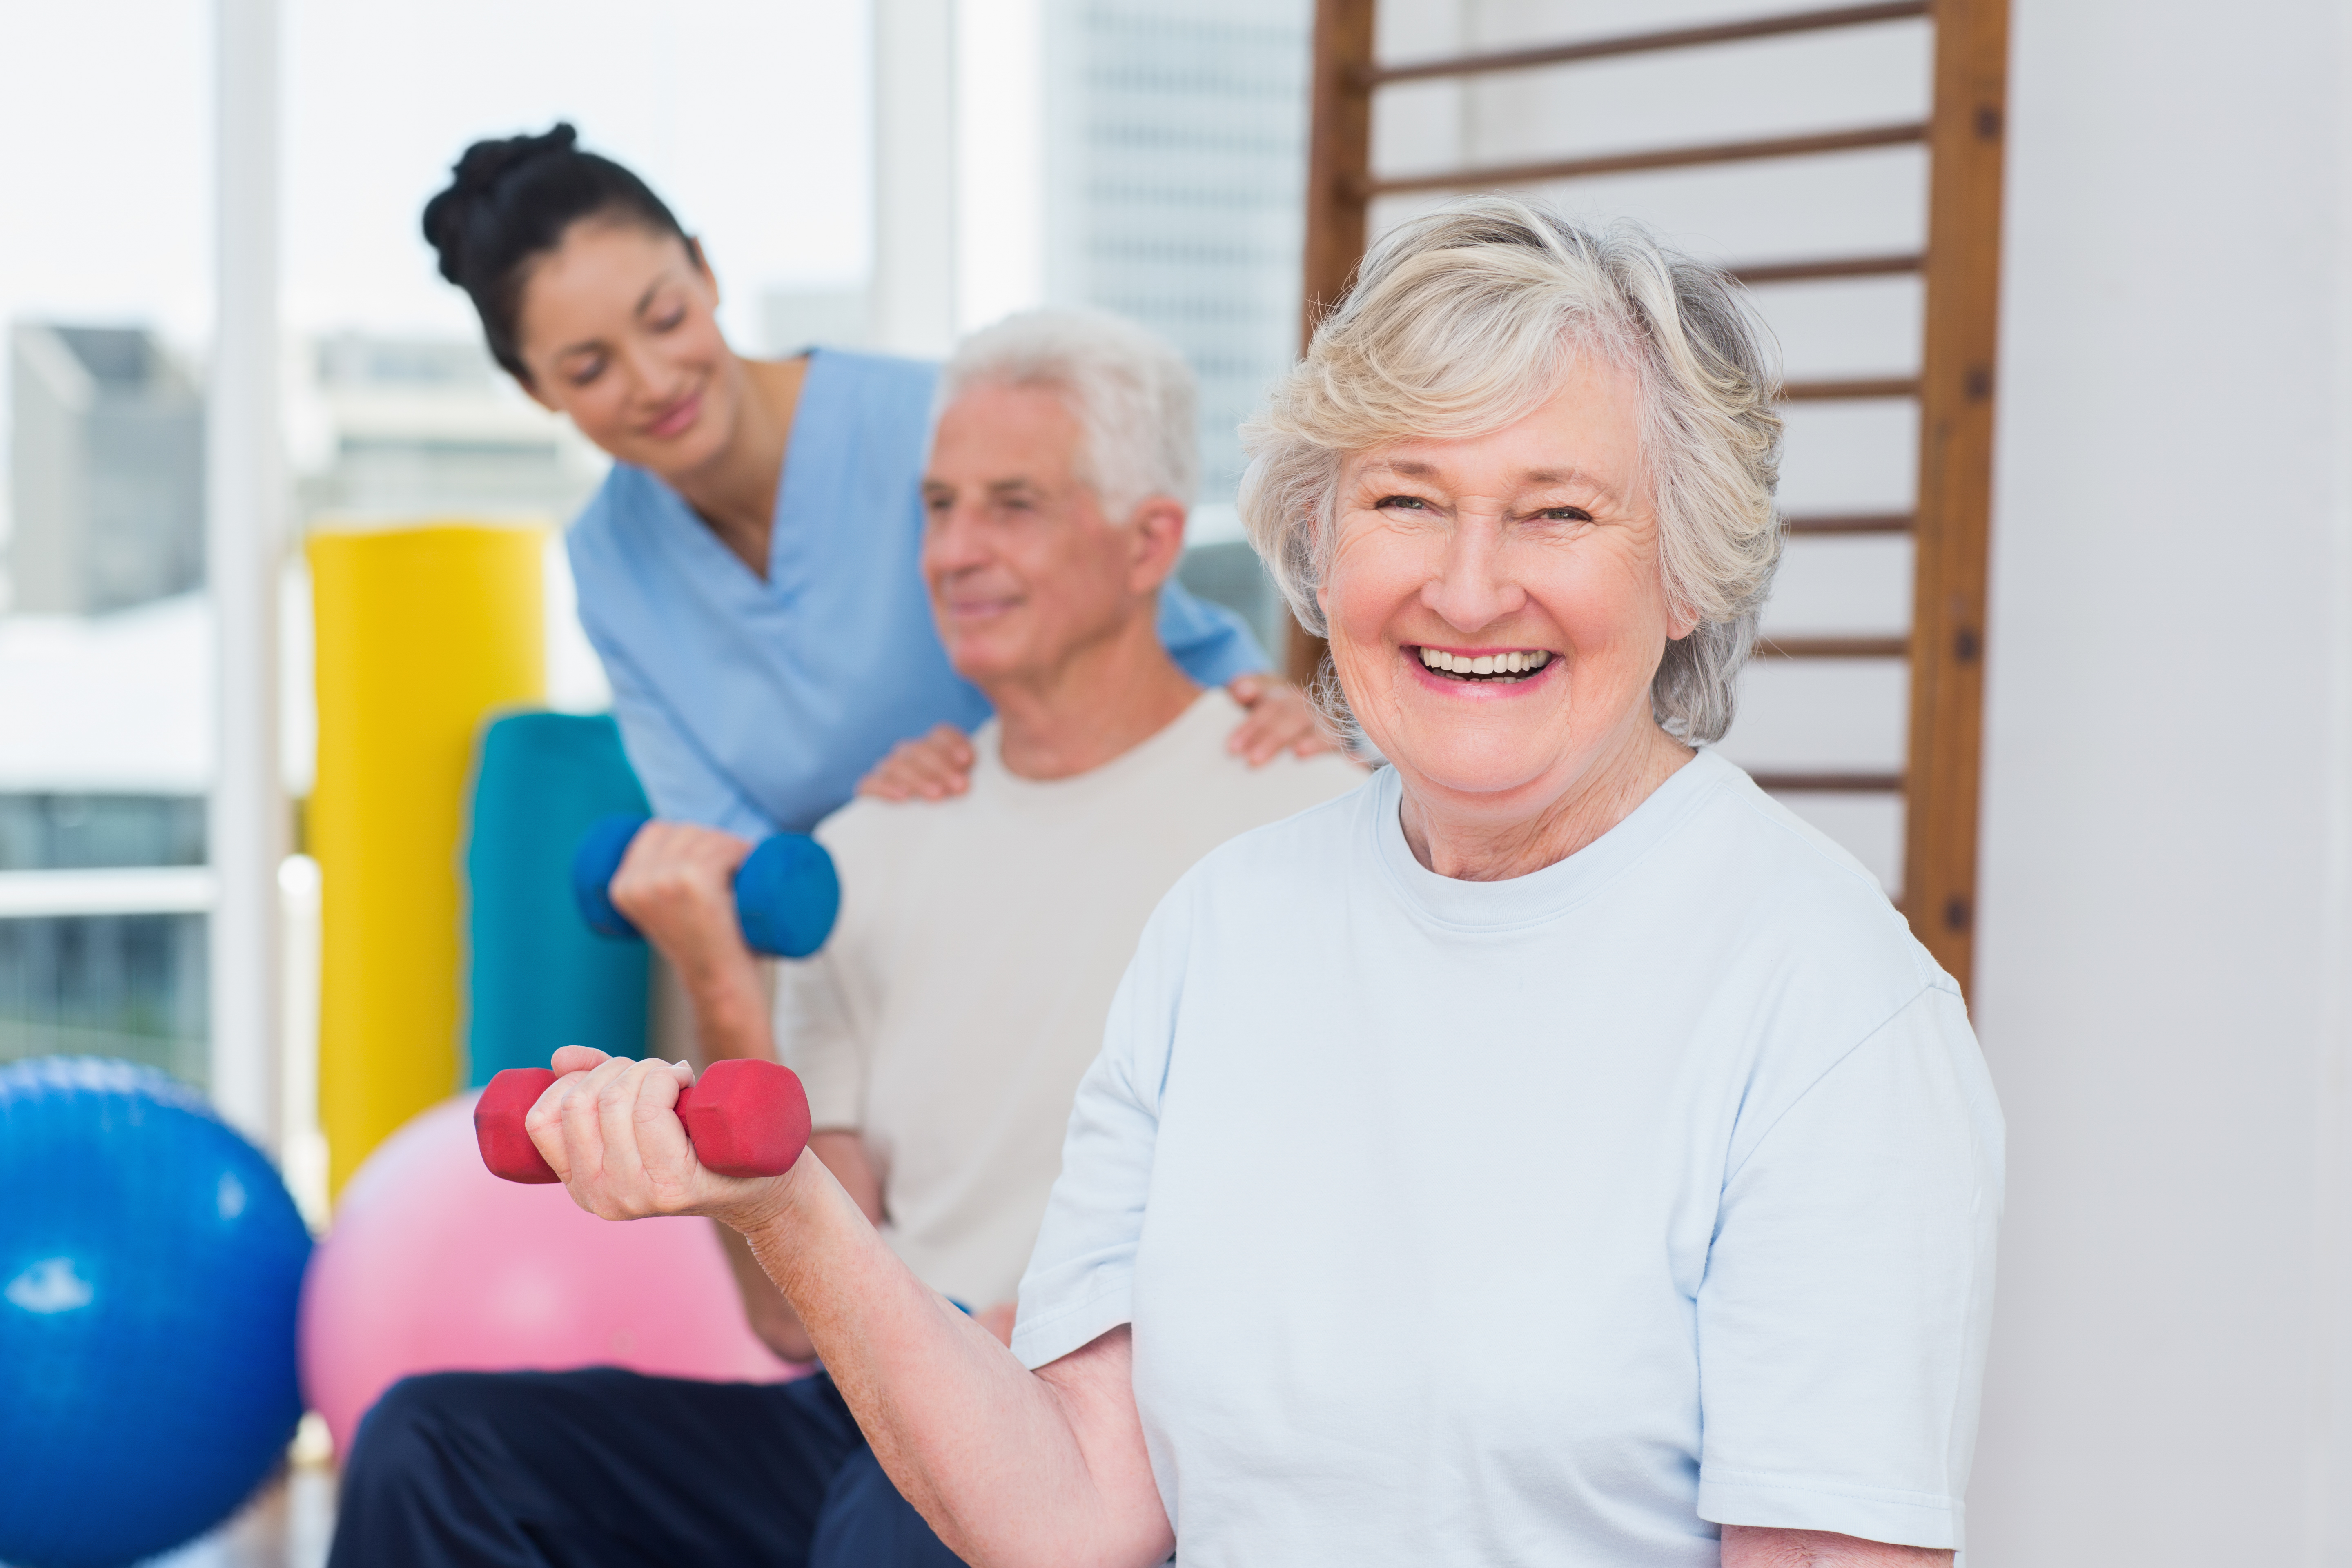 Portrait of happy senior woman lifting dumbbells while sitting with man and instructor in gym